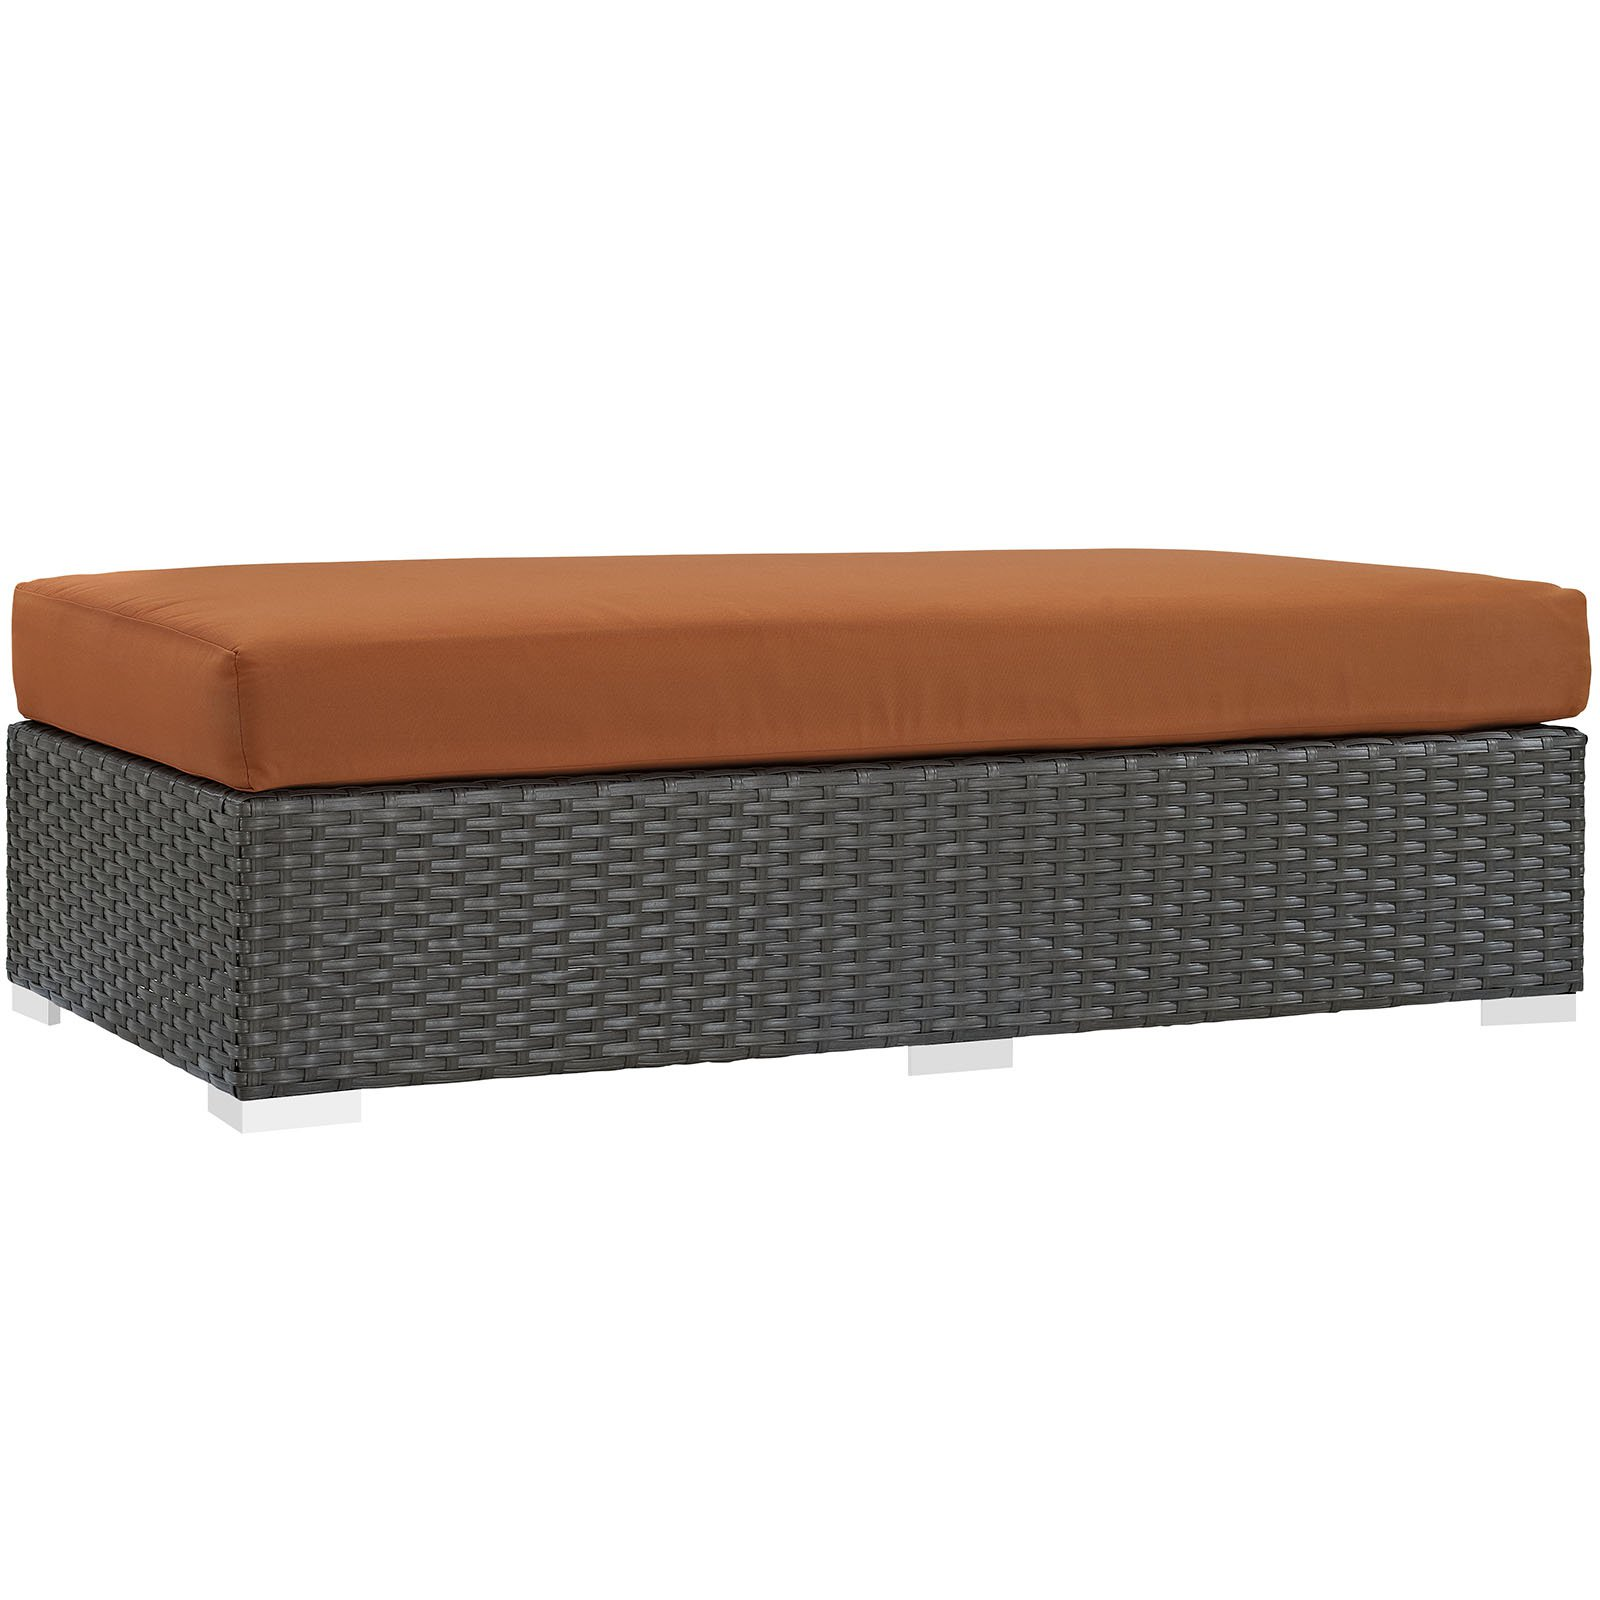 Modway Sojourn Outdoor Patio Fabric Sunbrella Rectangle Ottoman, Multiple Colors